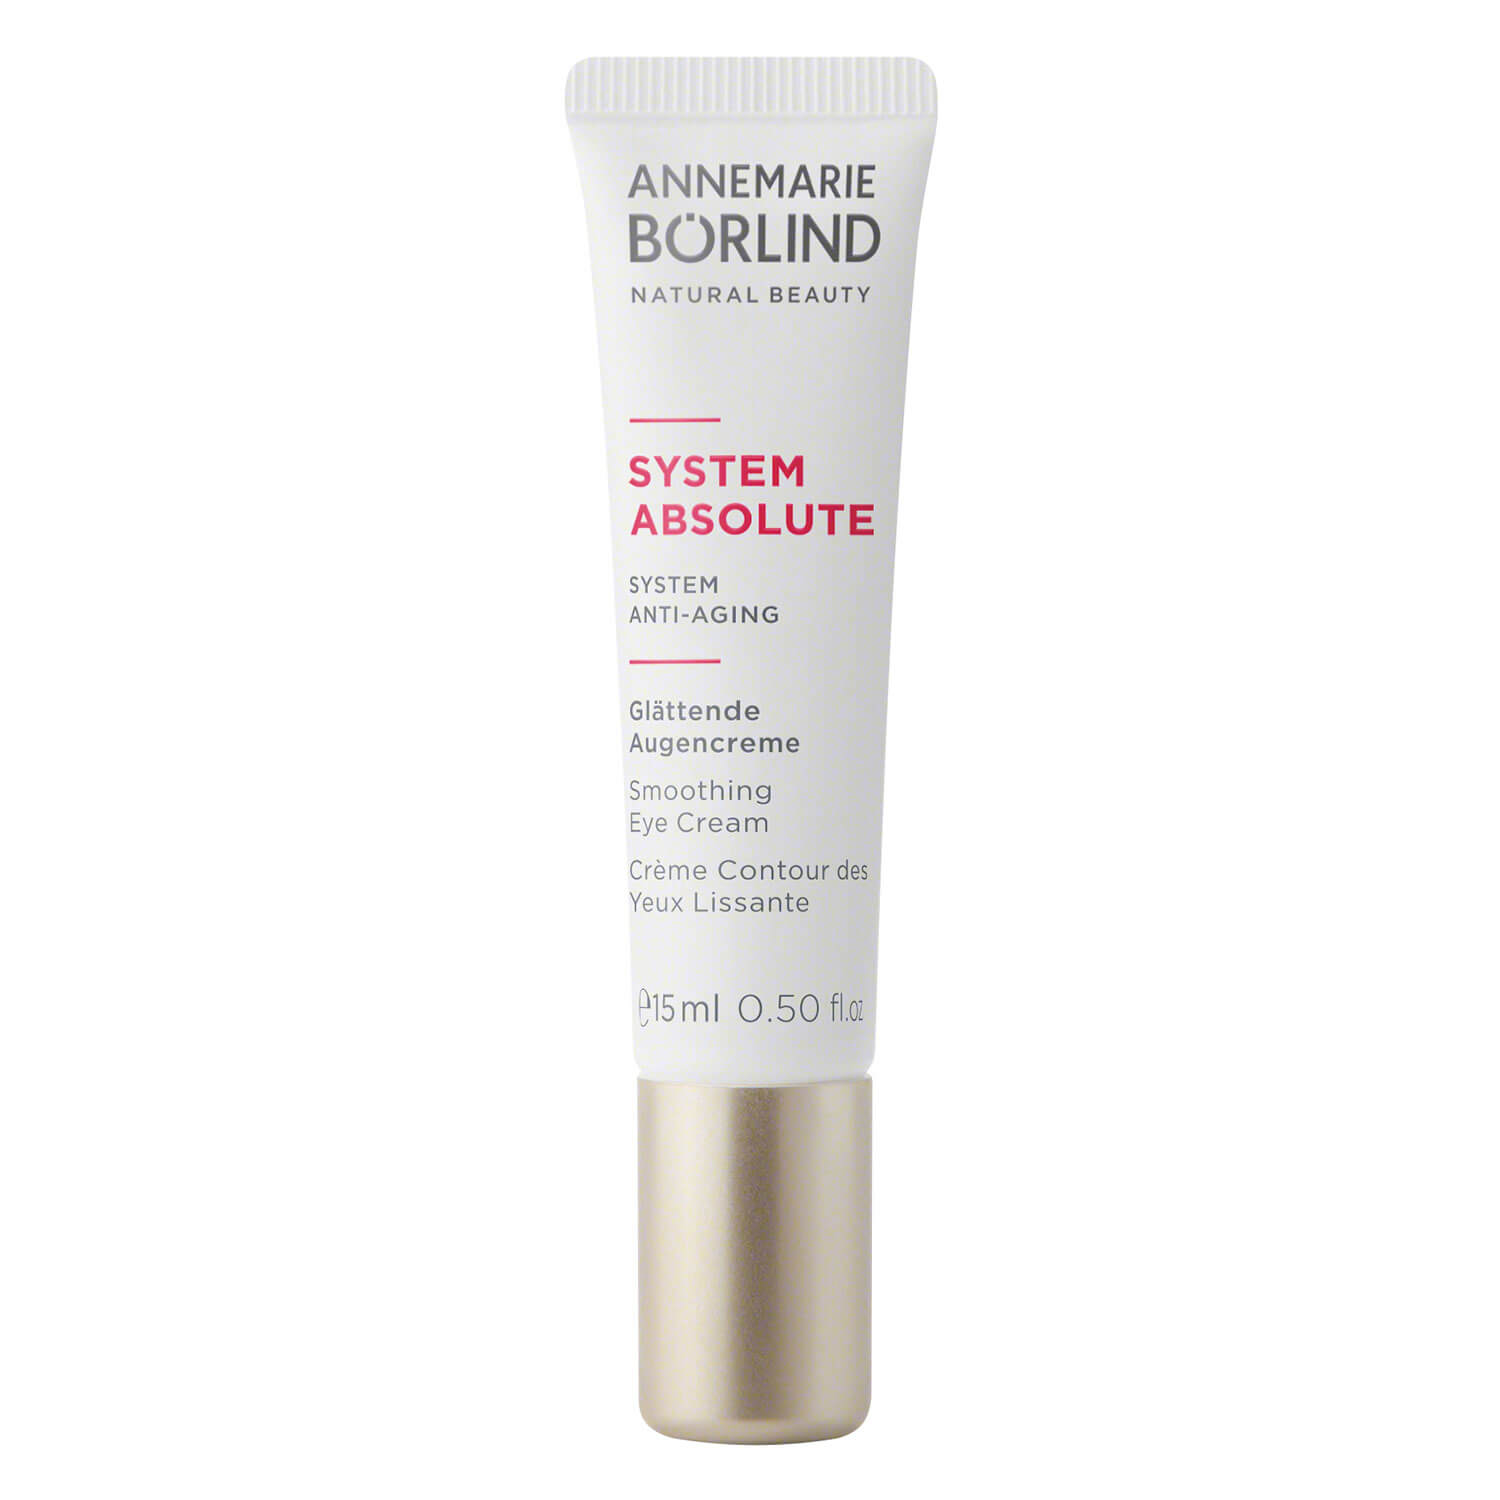 System Absolute - Anti-Aging Augencreme